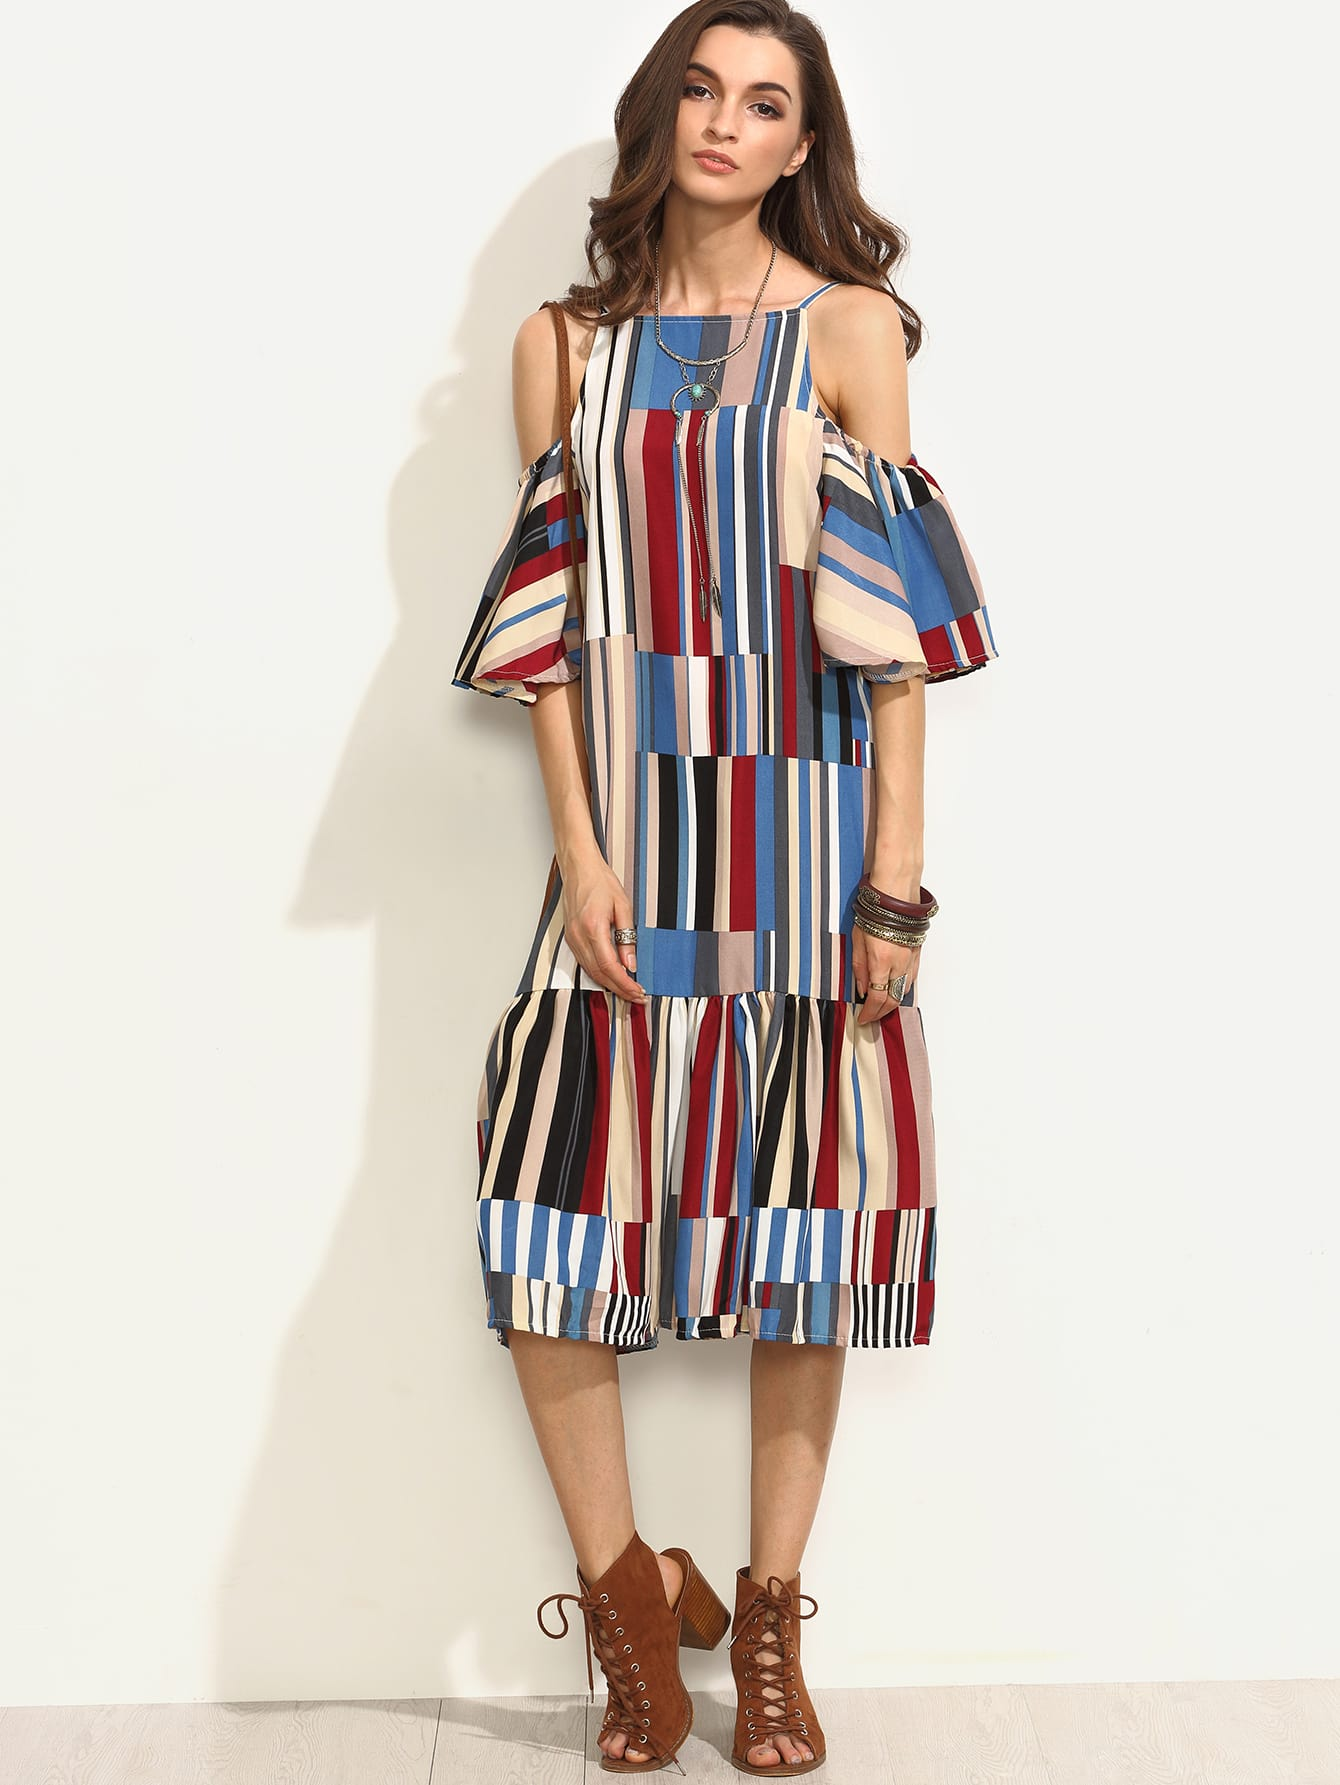 Colorful Printed Cold Shoulder Ruffle DressColorful Printed Cold Shoulder Ruffle Dress<br><br>color: Multicolor<br>size: one-size